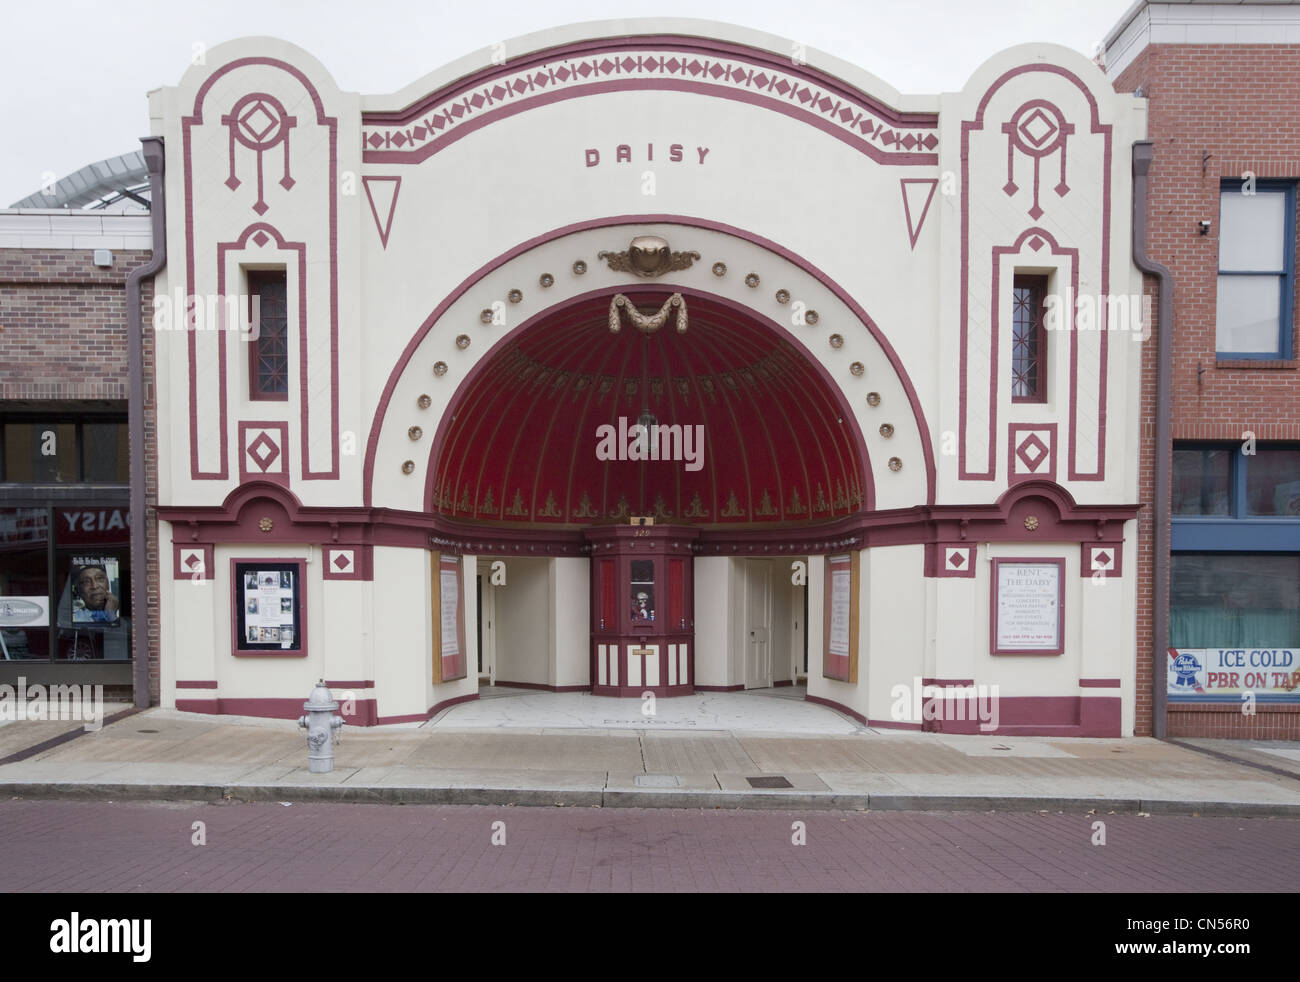 The 1902 Old Daisy Theater in Memphis, Tennessee is an example of nickelodeon architecture from the early movie - Stock Image